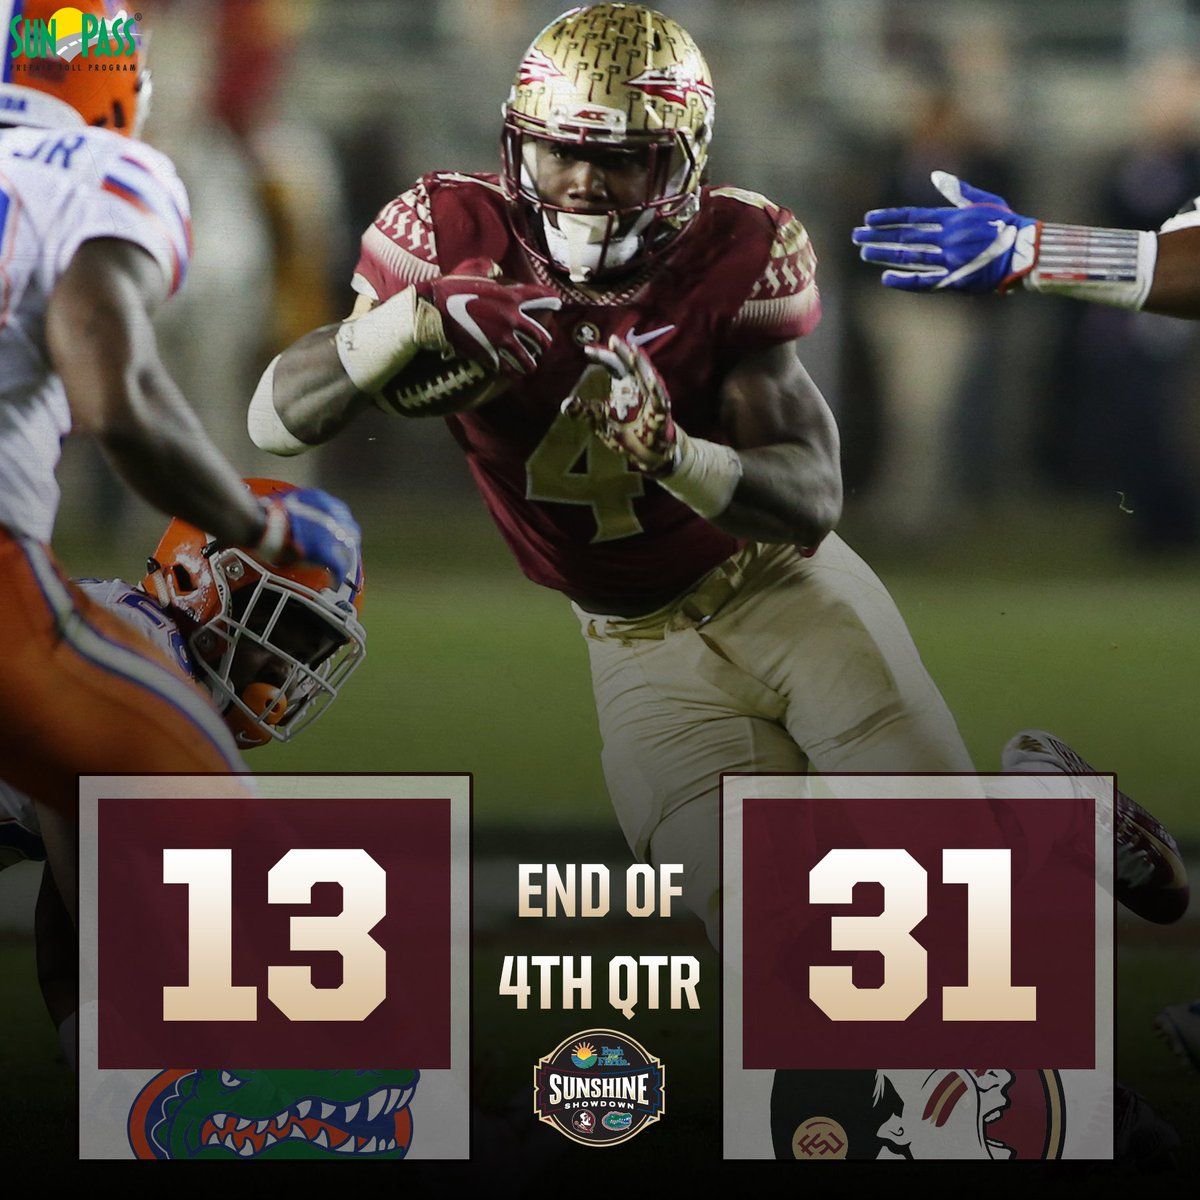 We just beat the damn Gators. https://t.co/iH8fpWFw3N